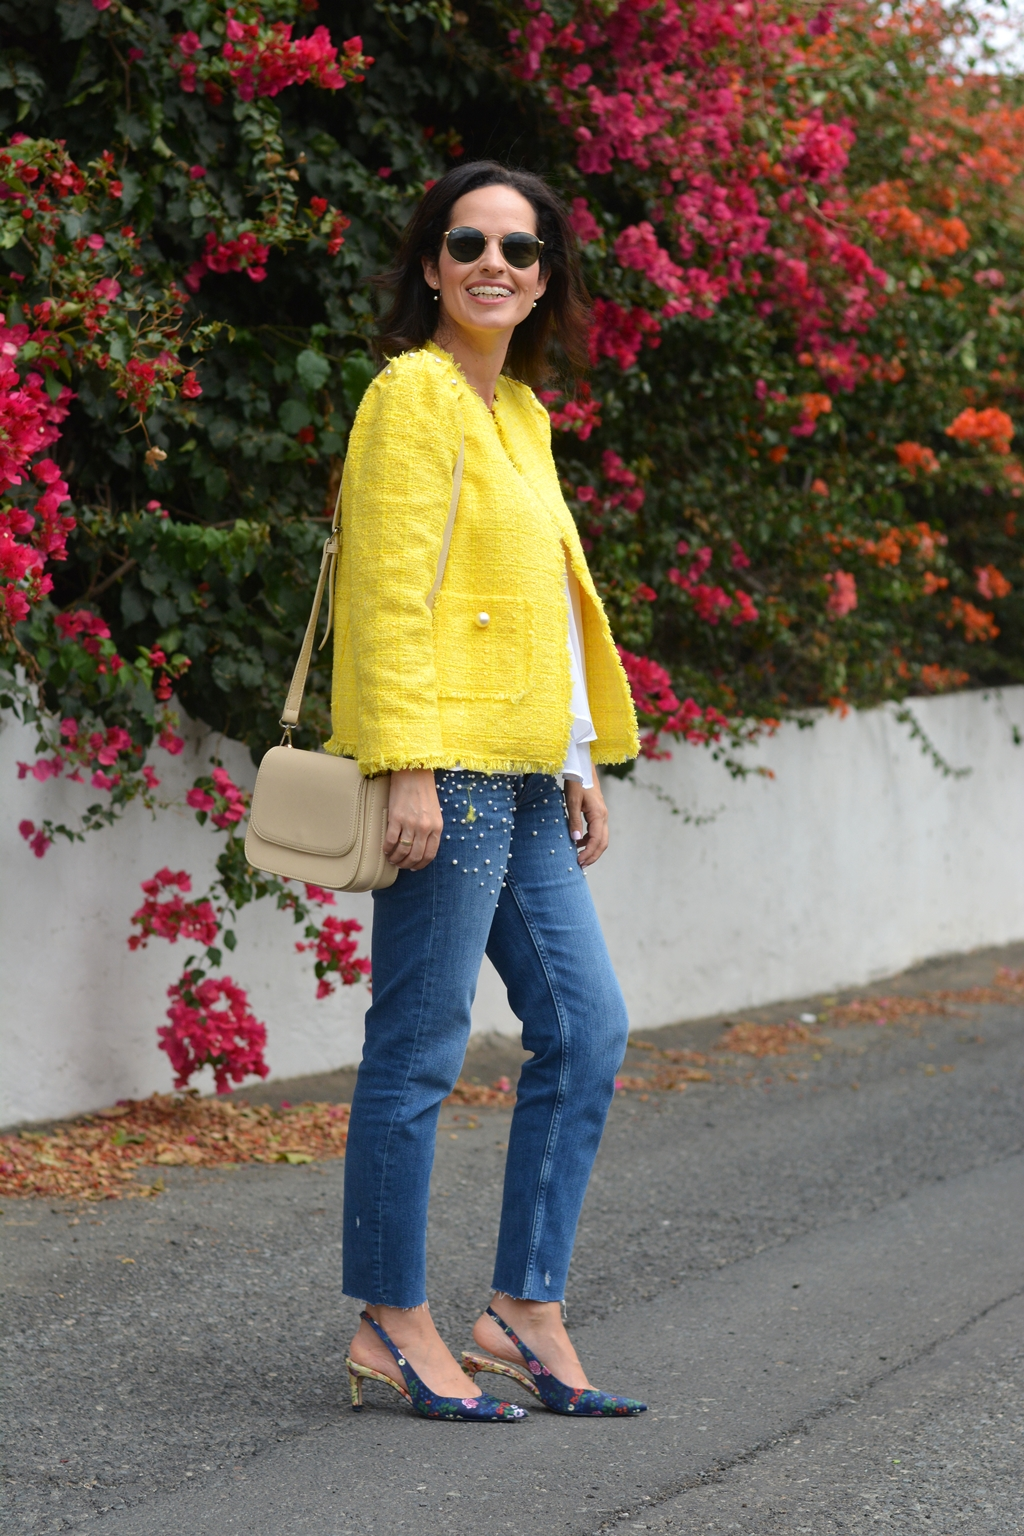 zara-yellow-tweed-jacket-streetstyle